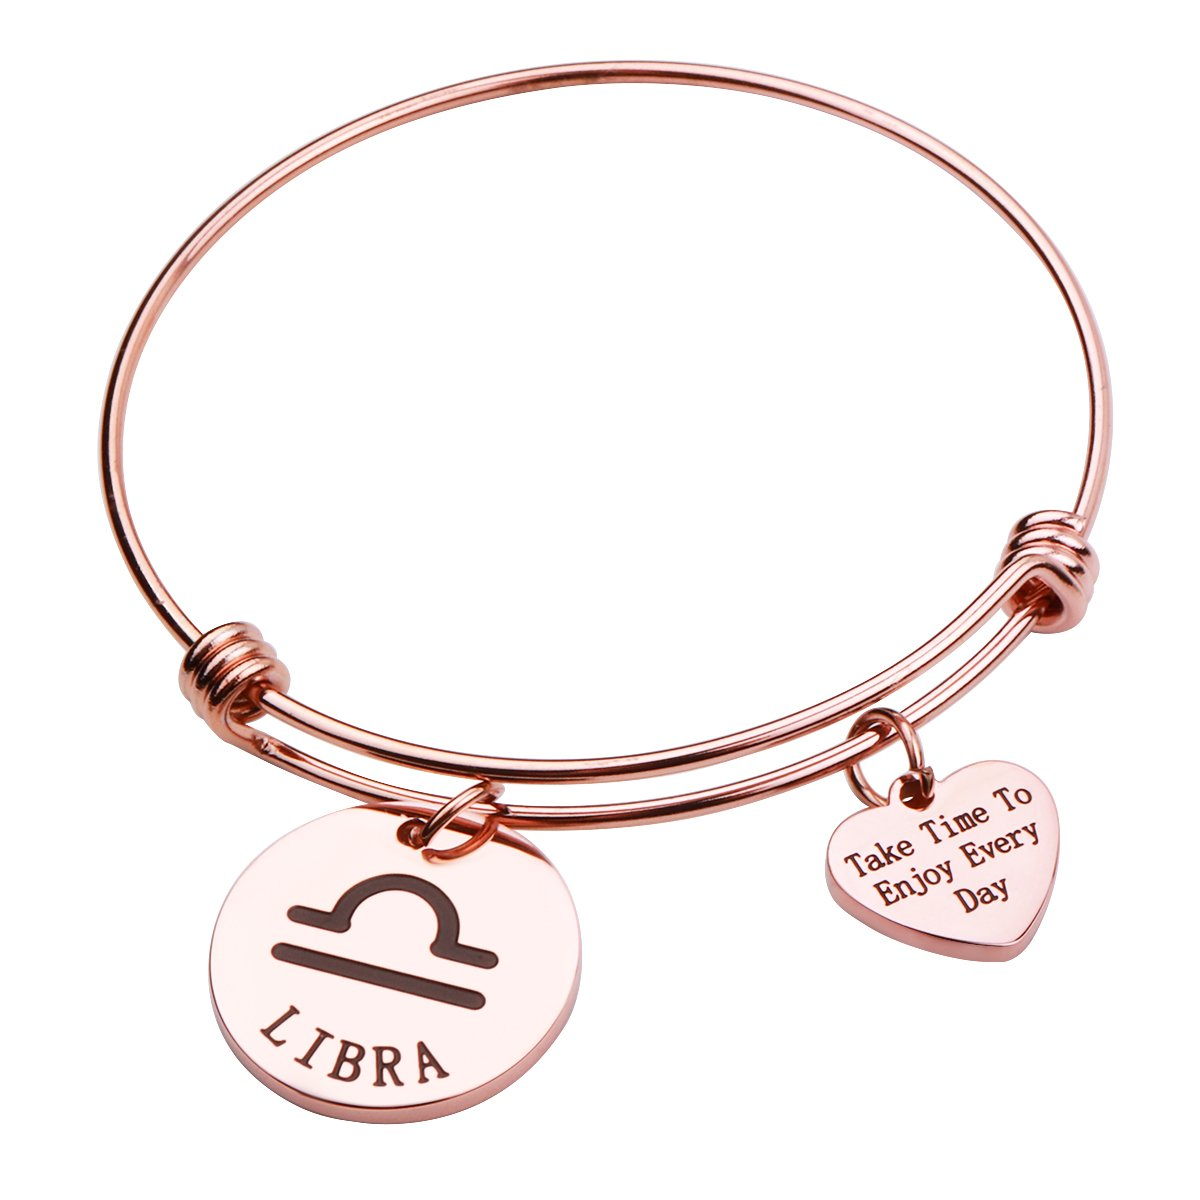 Rose Gold Zodiac Sign Bracelet Constellation Jewelry Gift for Her (Libra)